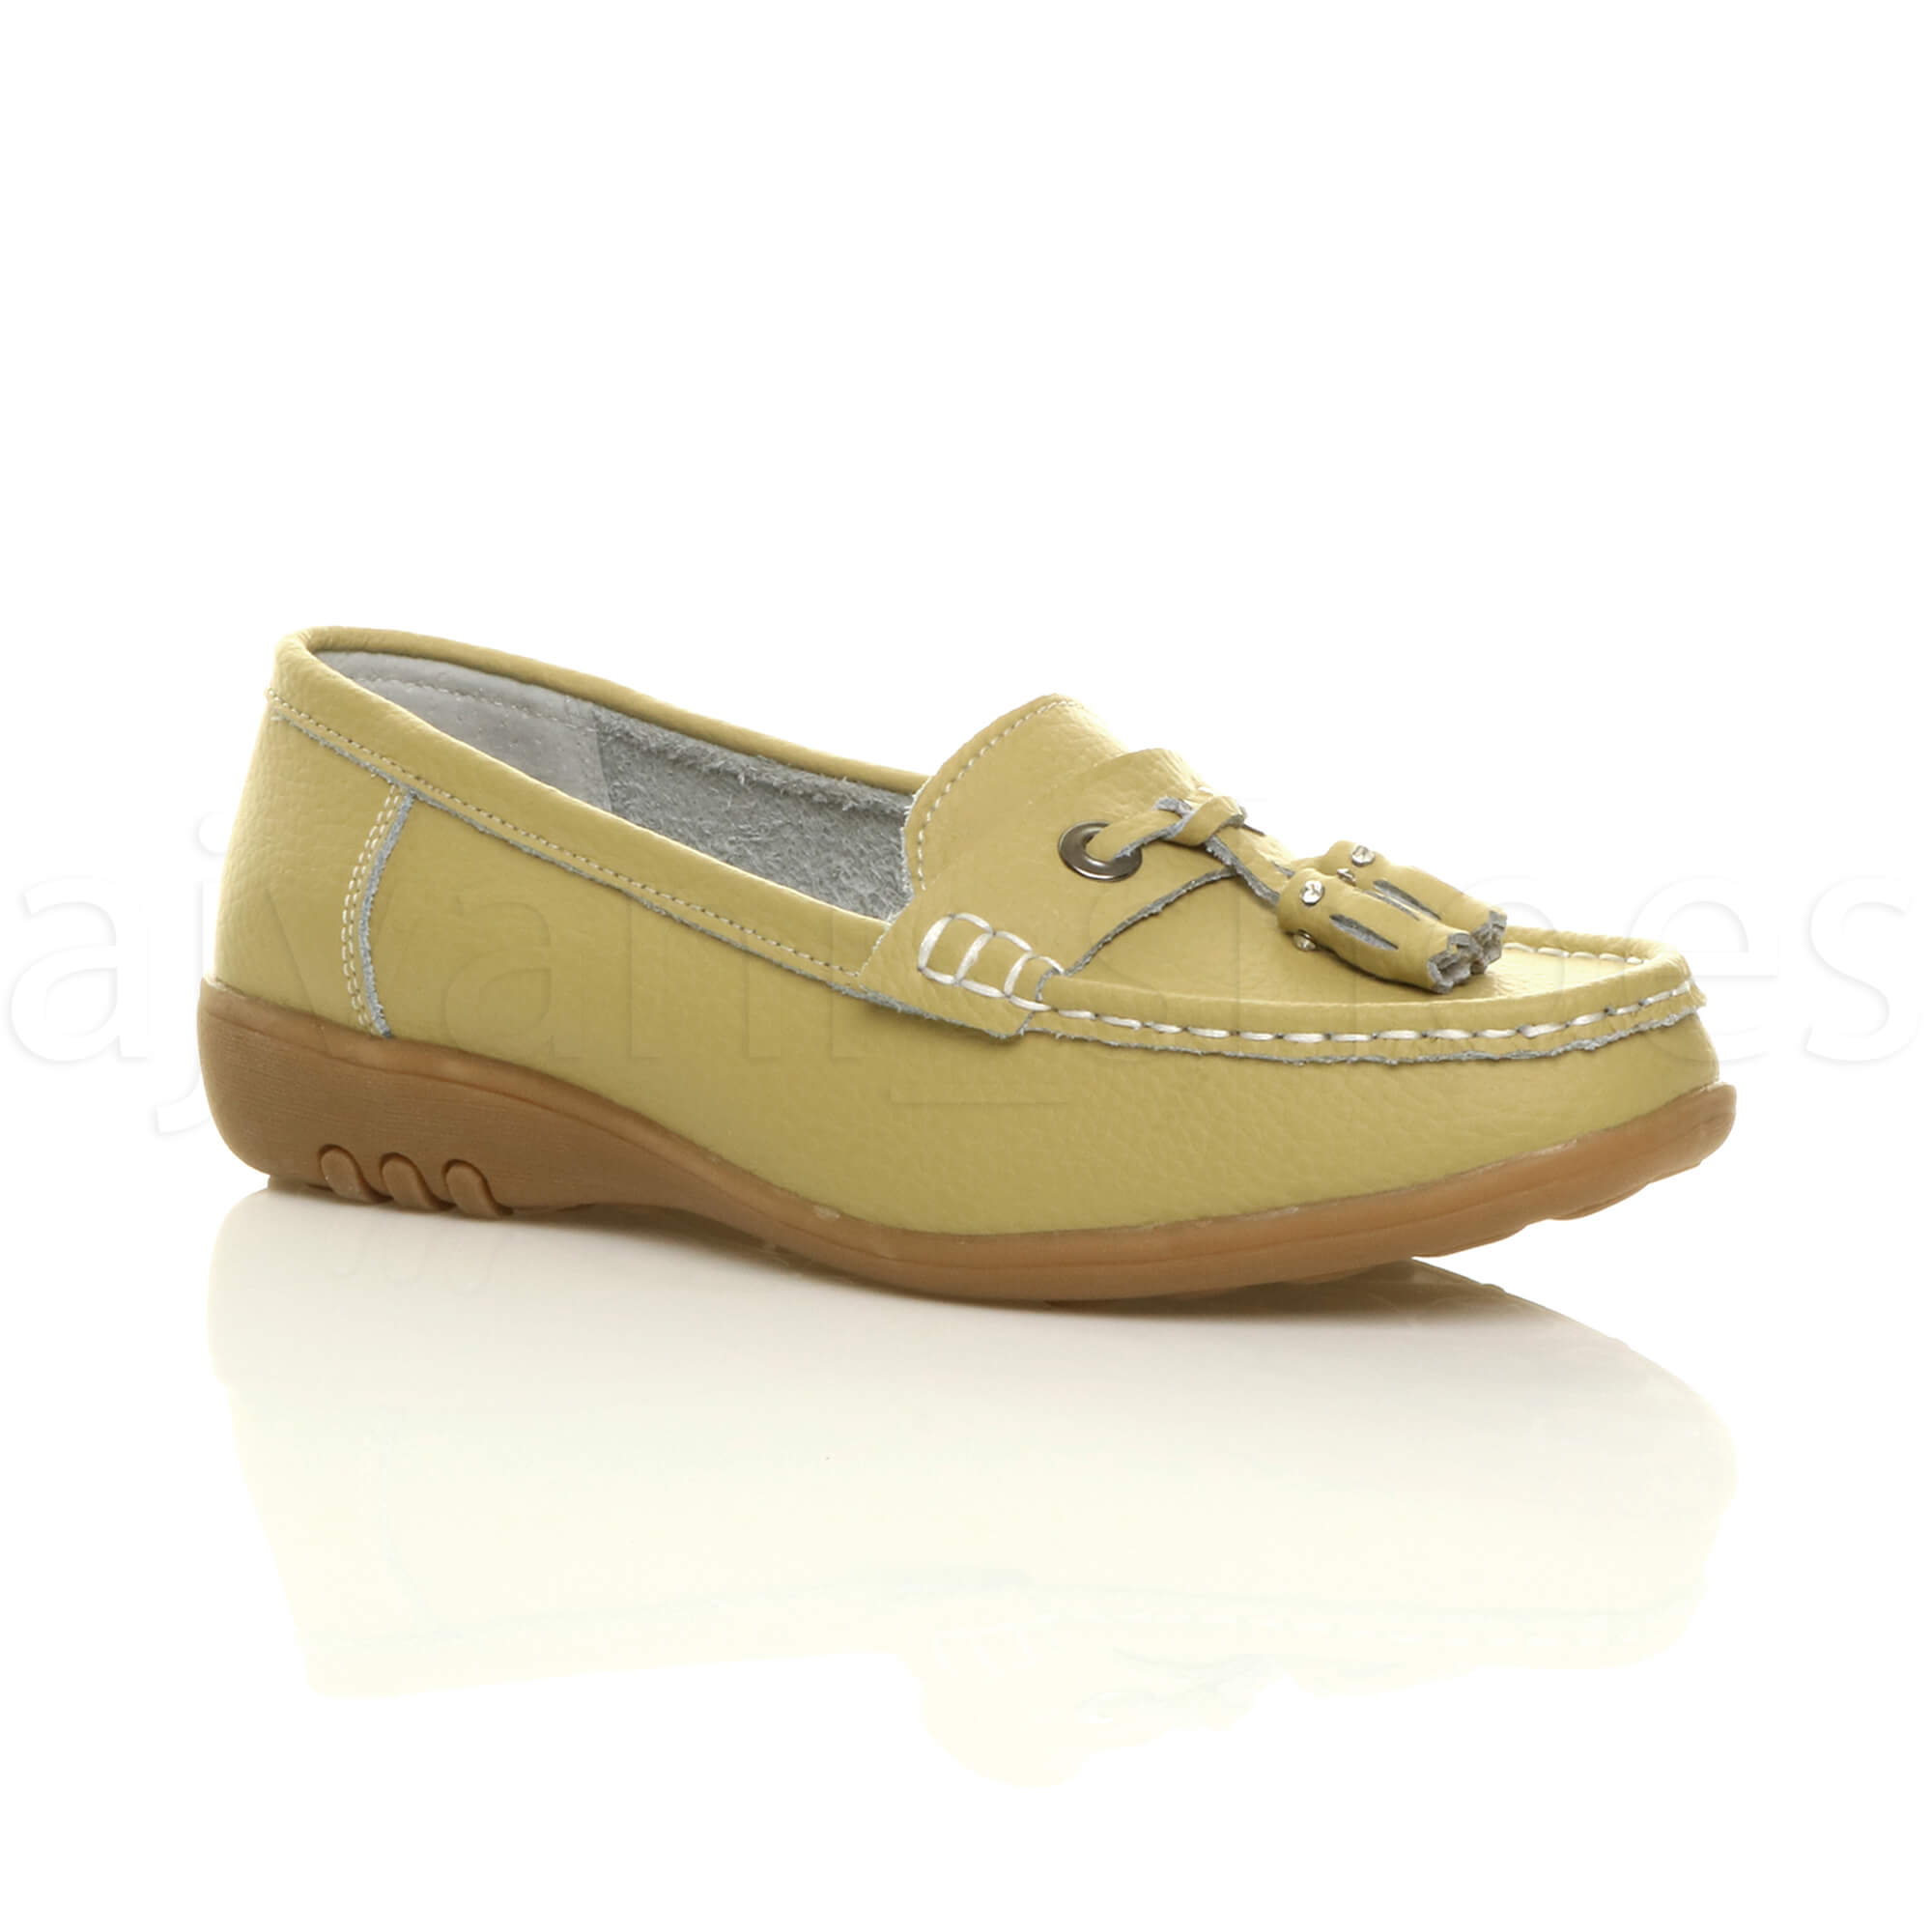 WOMENS-LADIES-LOW-HEEL-WEDGE-LEATHER-TASSEL-LOAFERS-COMFORT-MOCCASINS-SHOES-SIZE thumbnail 34